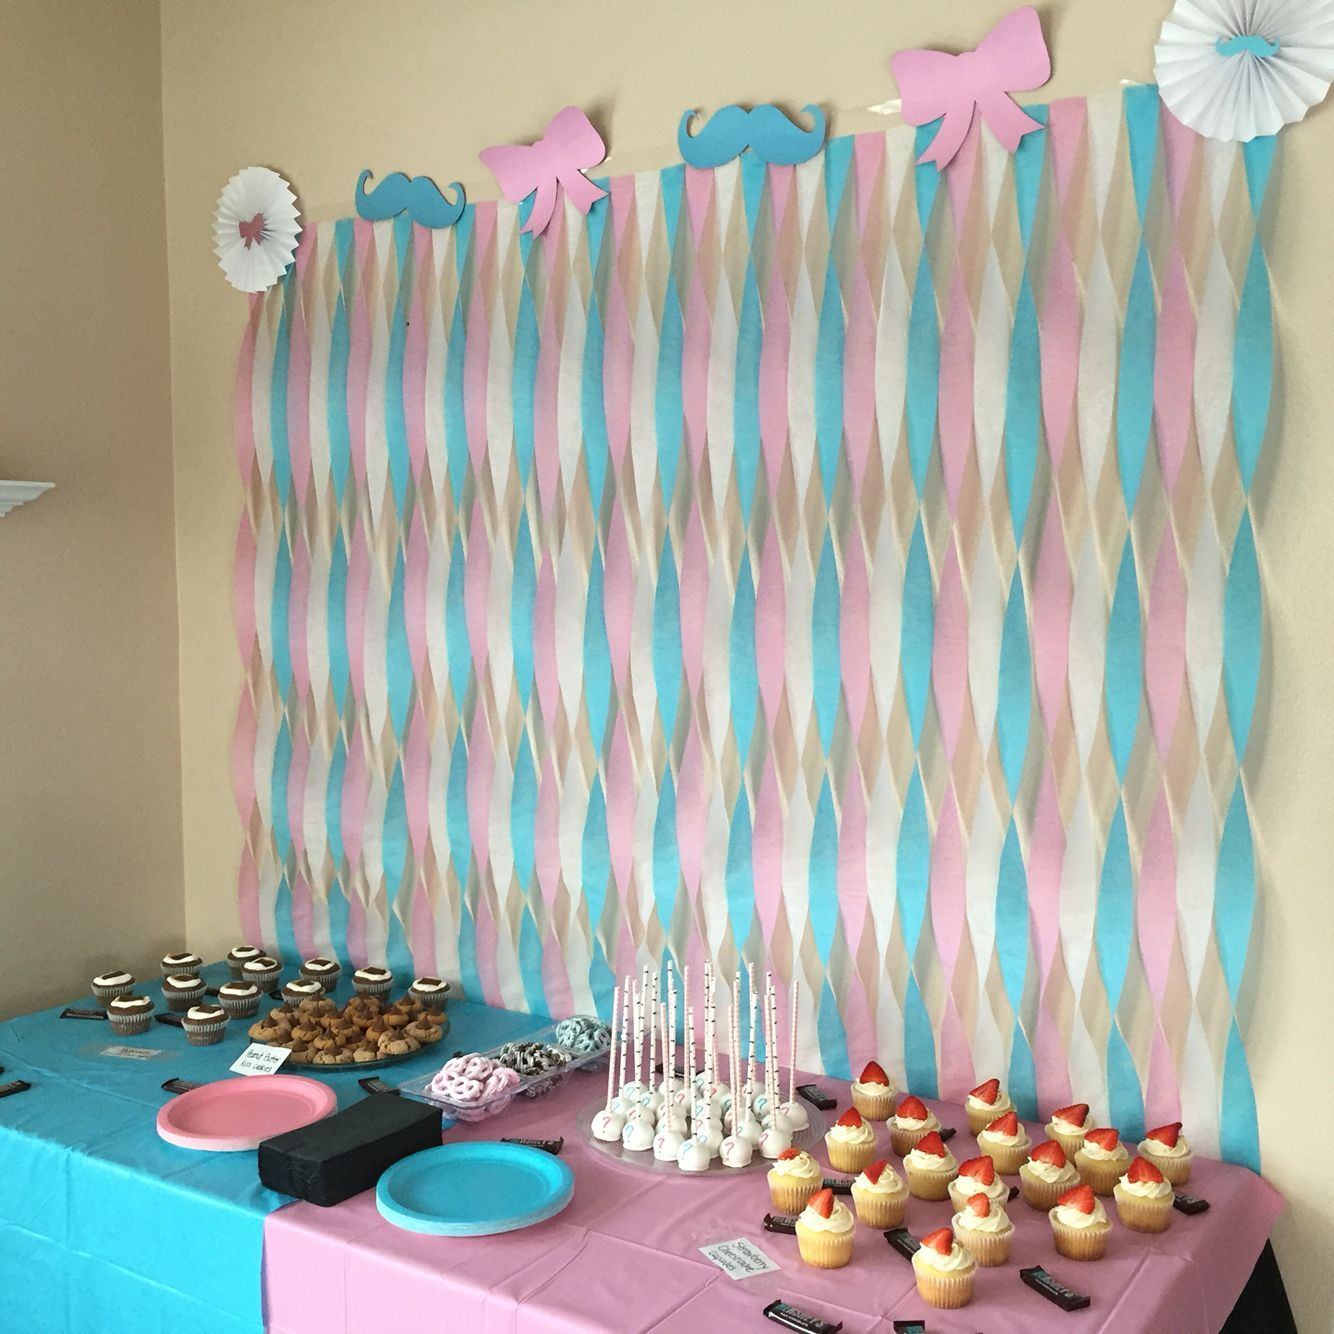 10 Gender Reveal Party Food Ideas That Are Mouth Watering Gender Reveal Party Gender Reveal Party Gender Reveal Party Decorations Gender Reveal Decorations